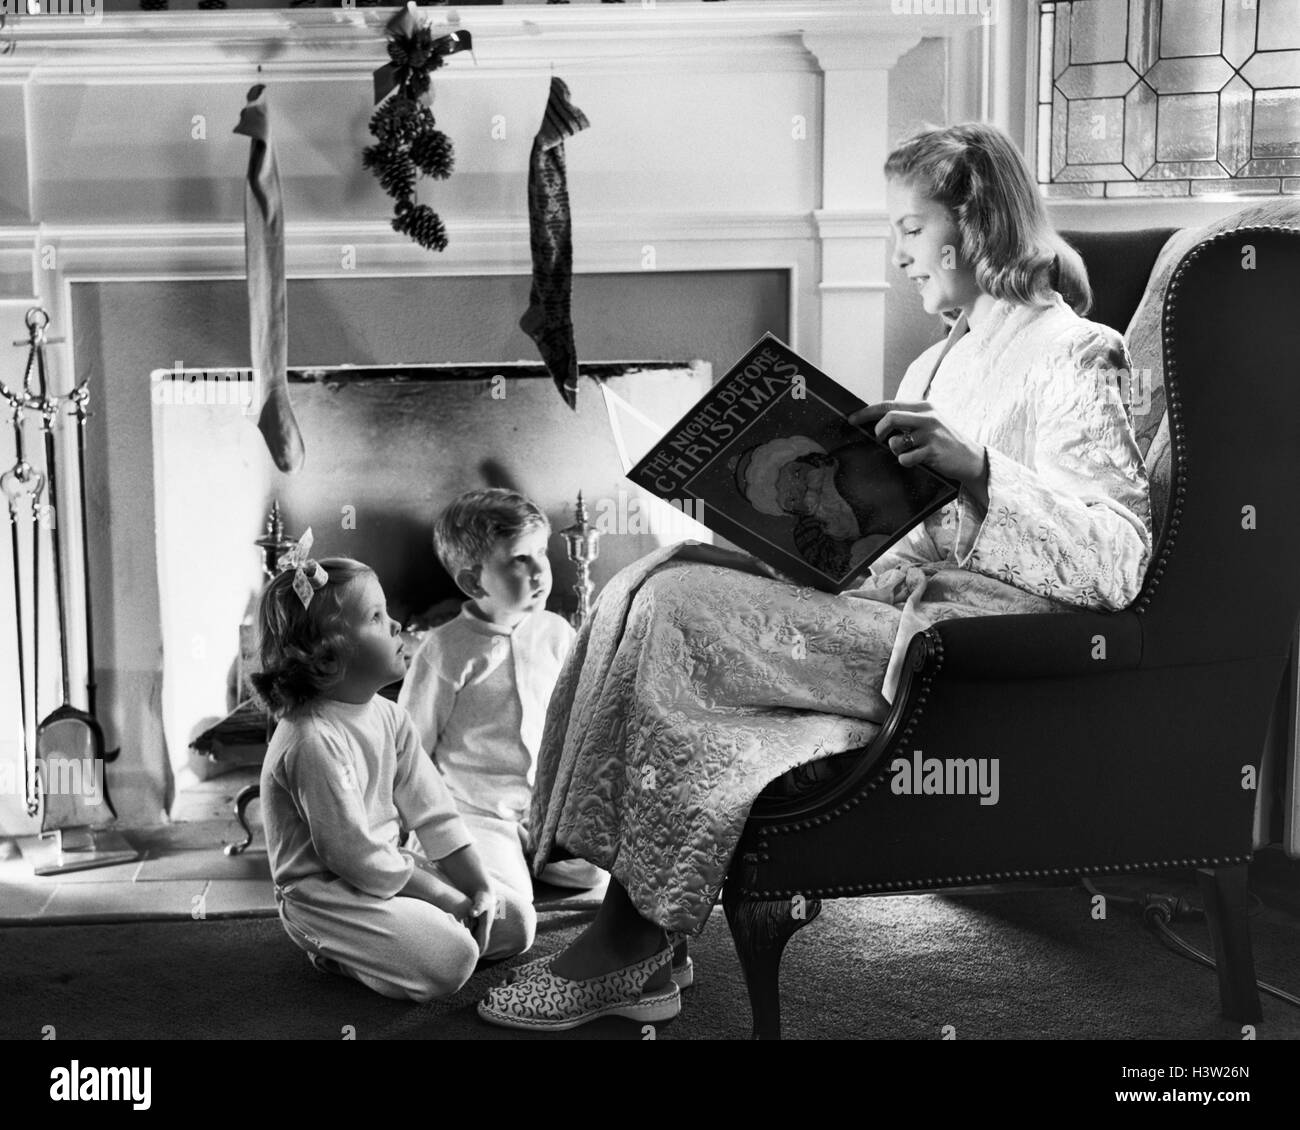 1940s 1950s MOTHER READING CHRISTMAS STORY TO BOY GIRL SITTING BY FIREPLACE HUNG WITH STOCKINGS - Stock Image